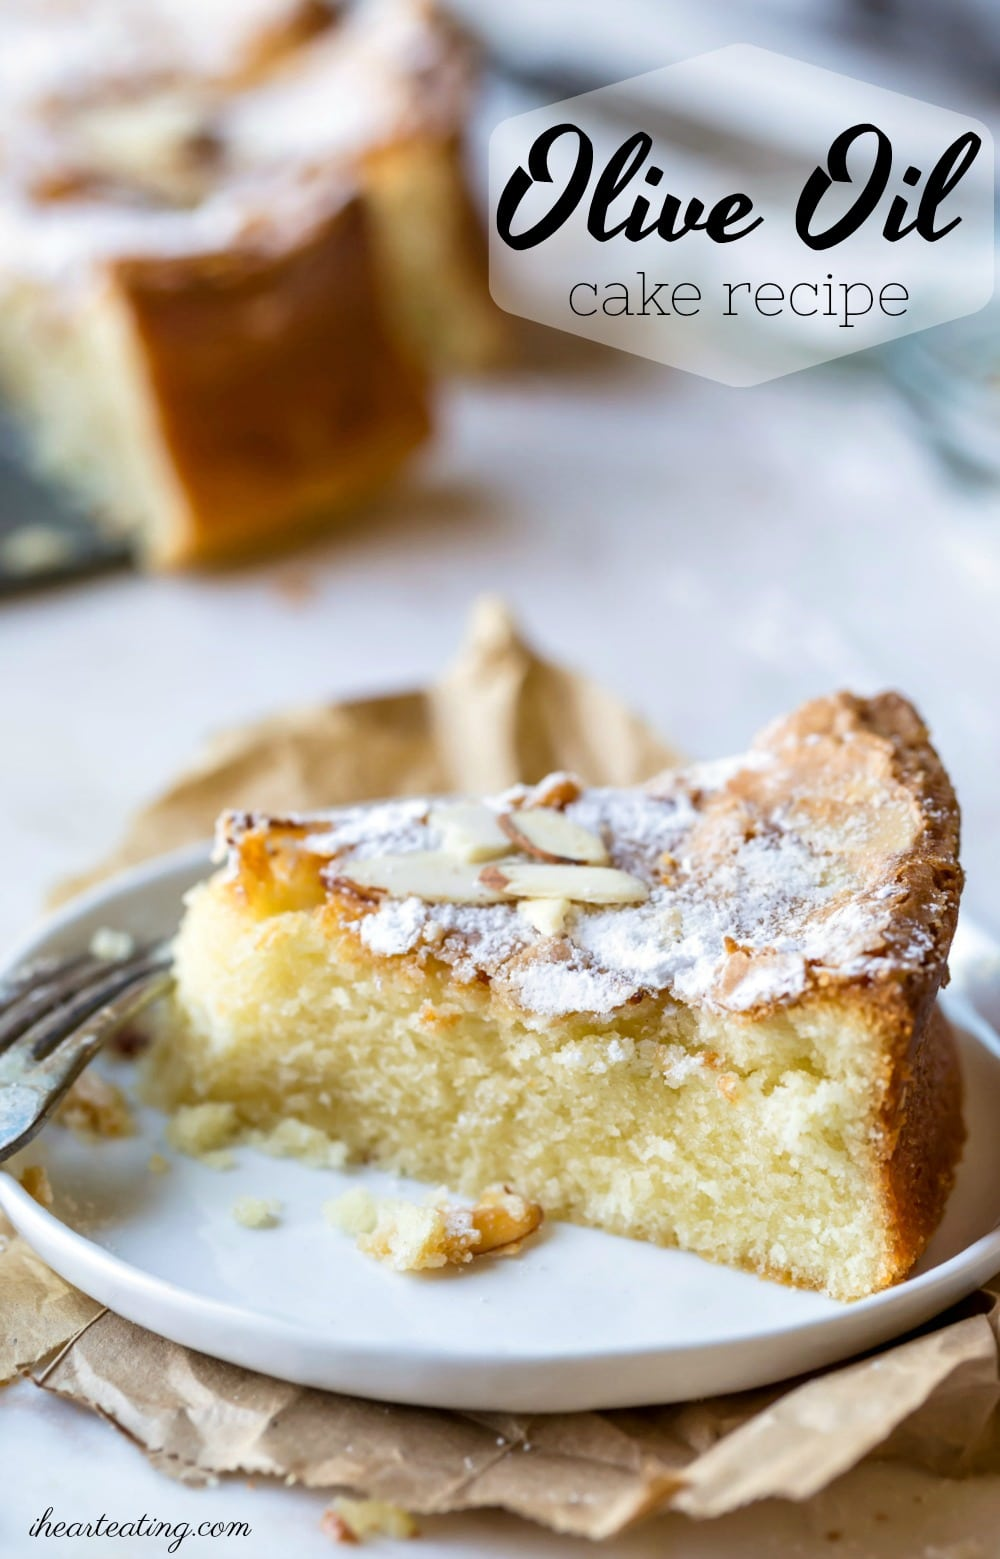 Moist olive oil cake is an easy, one-bowl cake that's a great alternative to pound cake. This simple cake recipe is made with pantry staples and takes almost no prep work to make. #oliveoil #Italian #cake #dessert #healthy #recipe #ihearteating